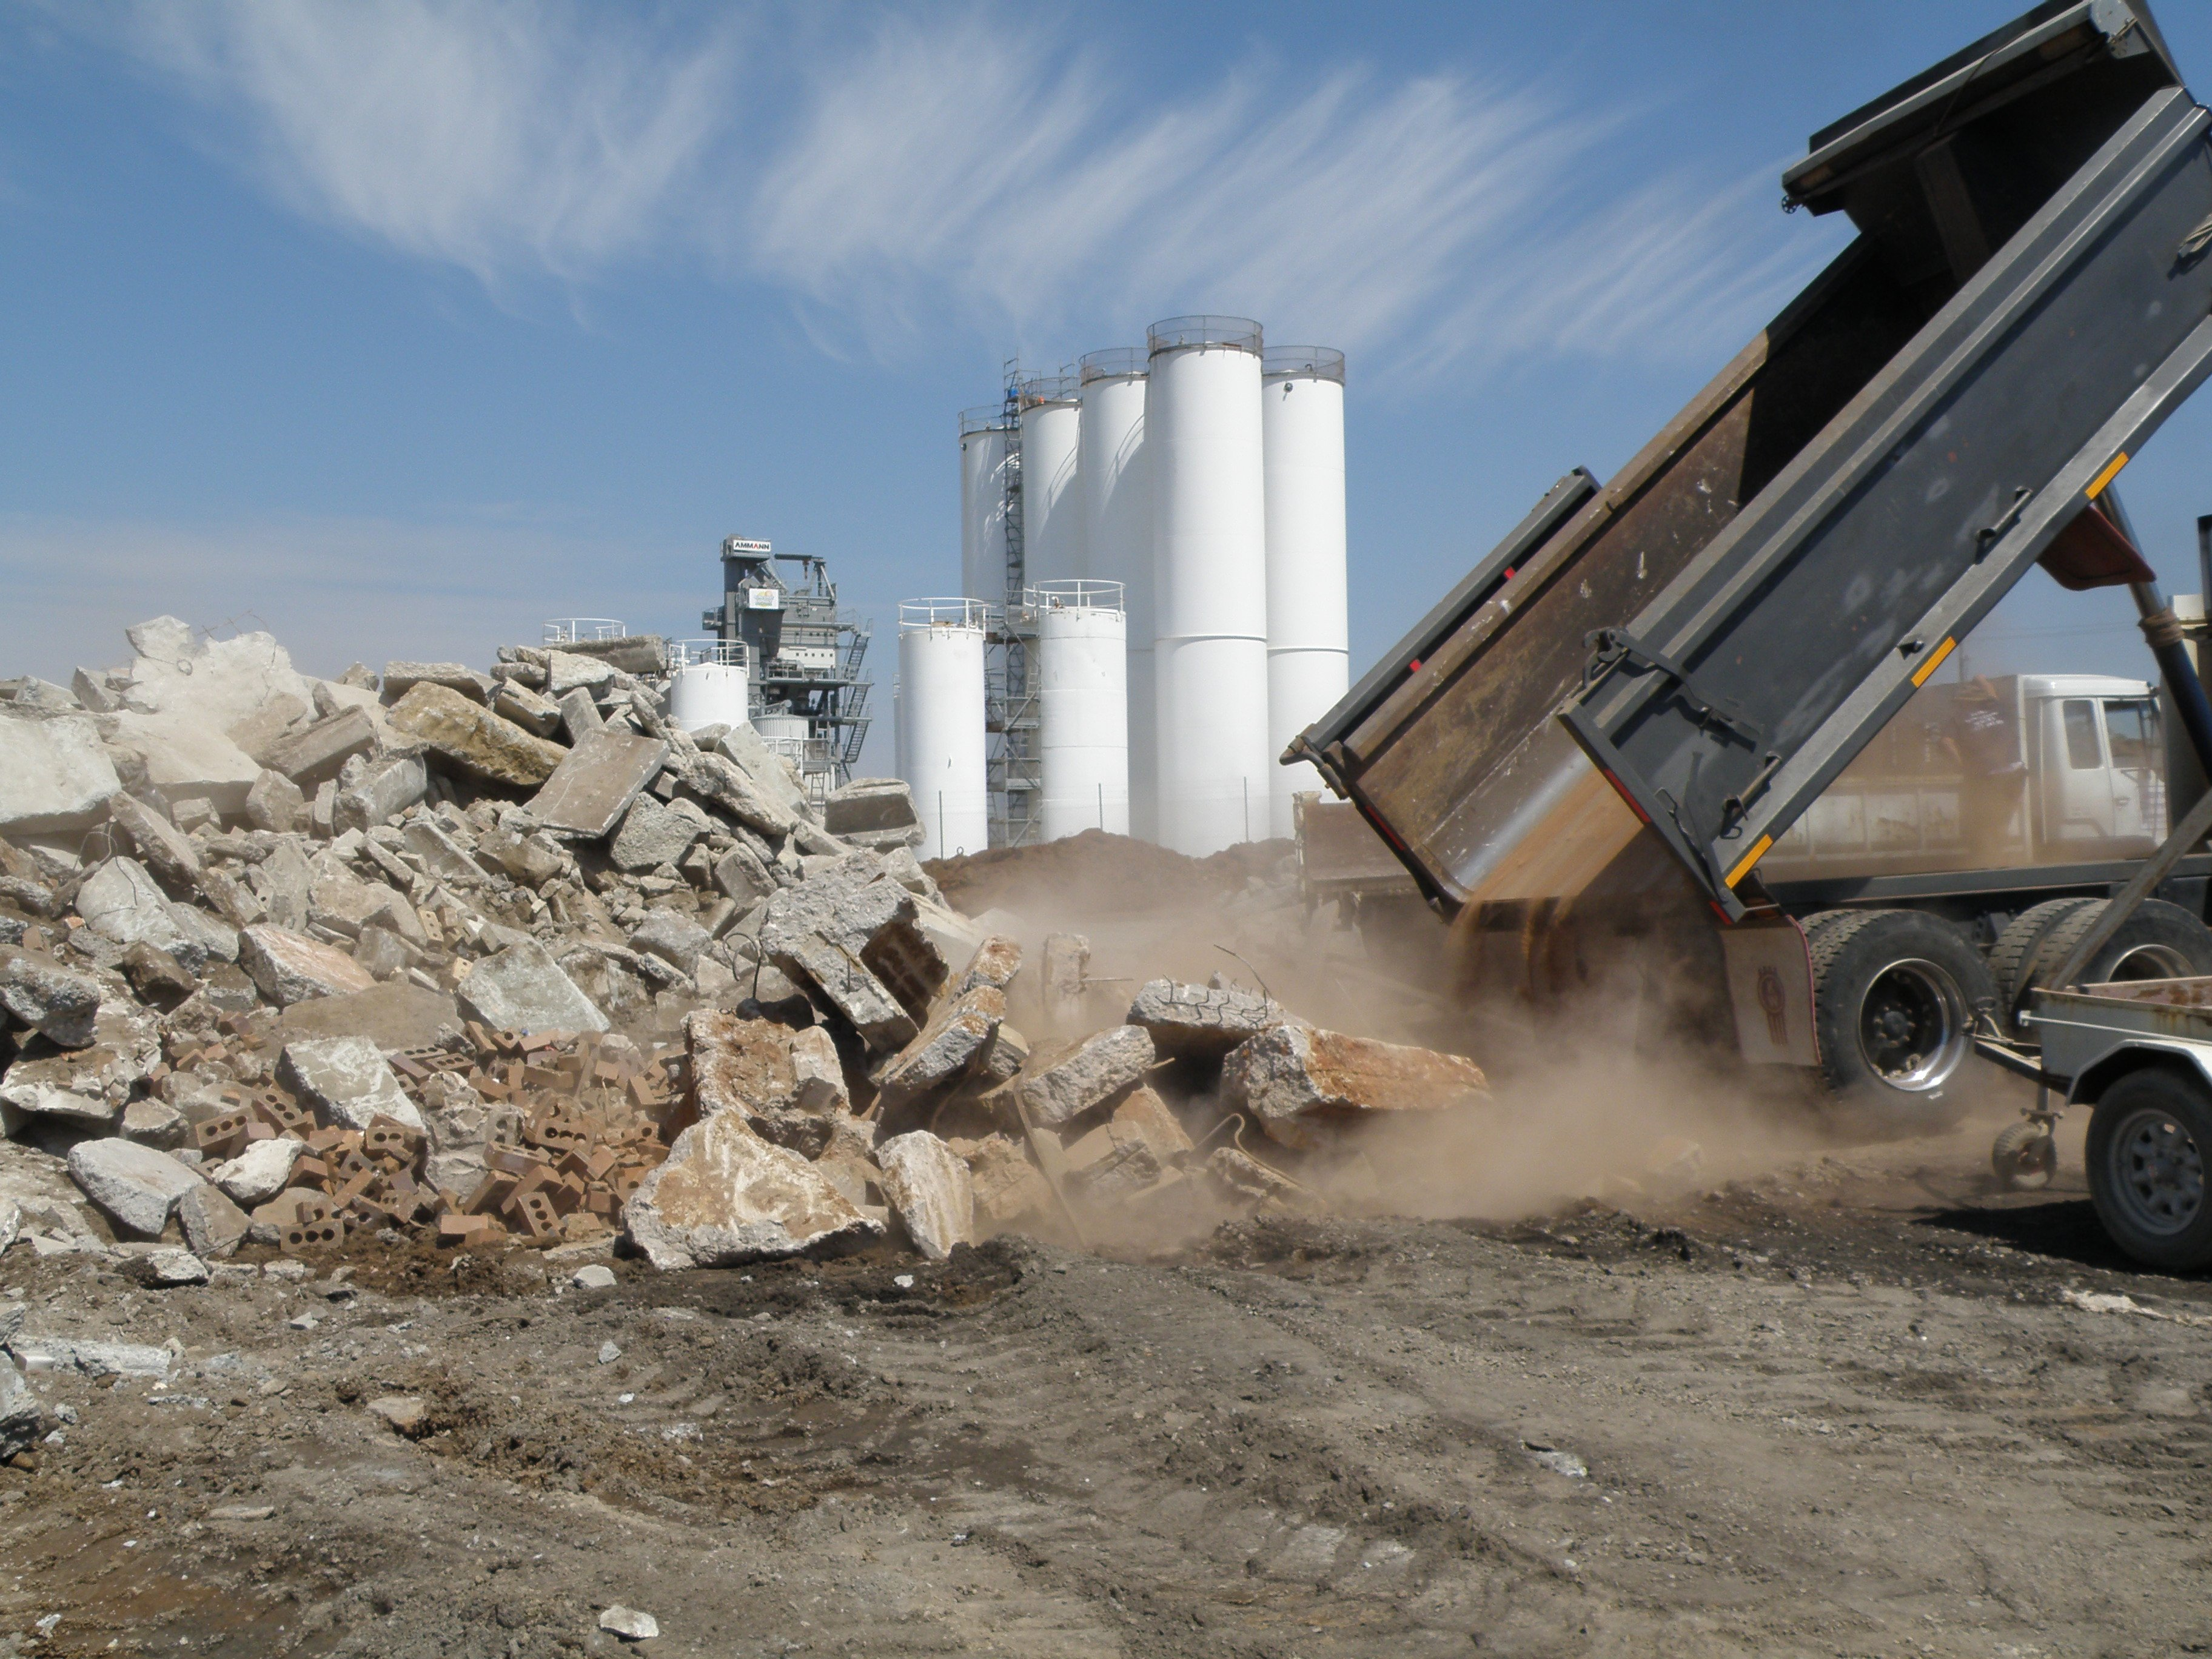 Truck dumping concrete waste at Moreton Bay Recycling facility in north Brisbane